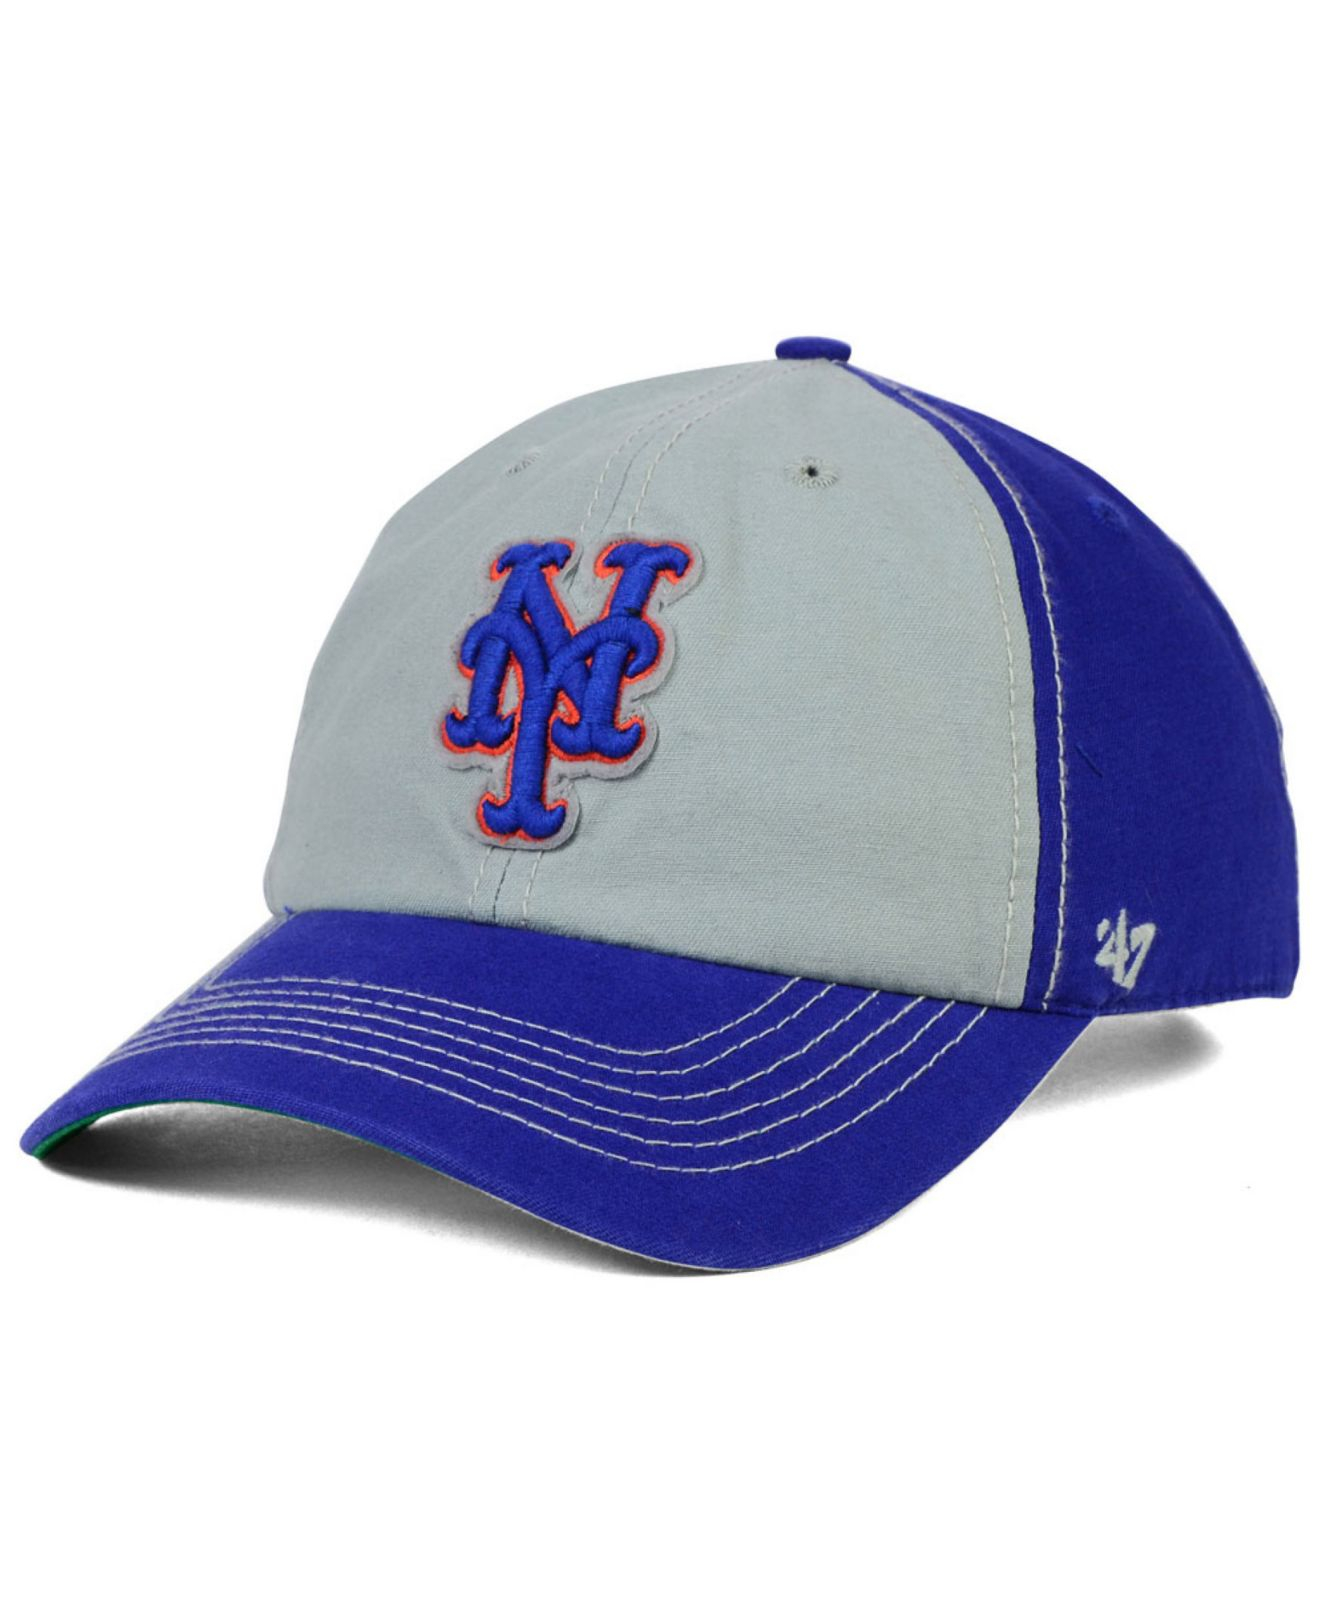 best loved 3bbe8 68a5b ... aliexpress lyst 47 brand new york mets adjustable clean up cap in blue  for men a5a03